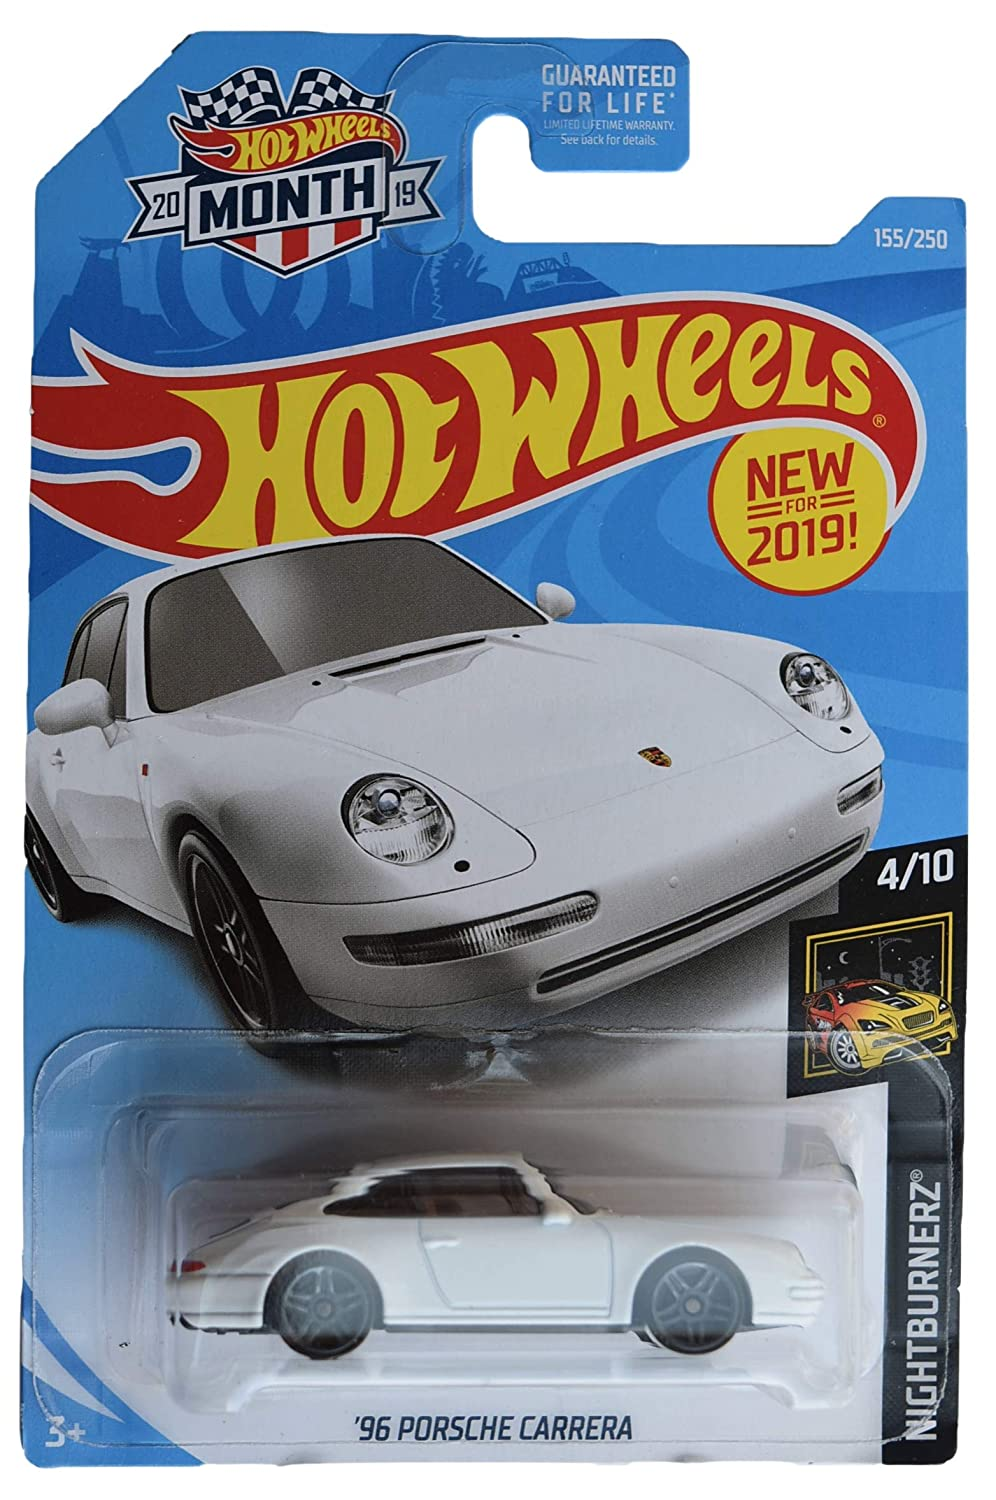 Hot Wheels Nightburnerz 4//10 96 Porsche Carrera 155//250 2019 Month Card White